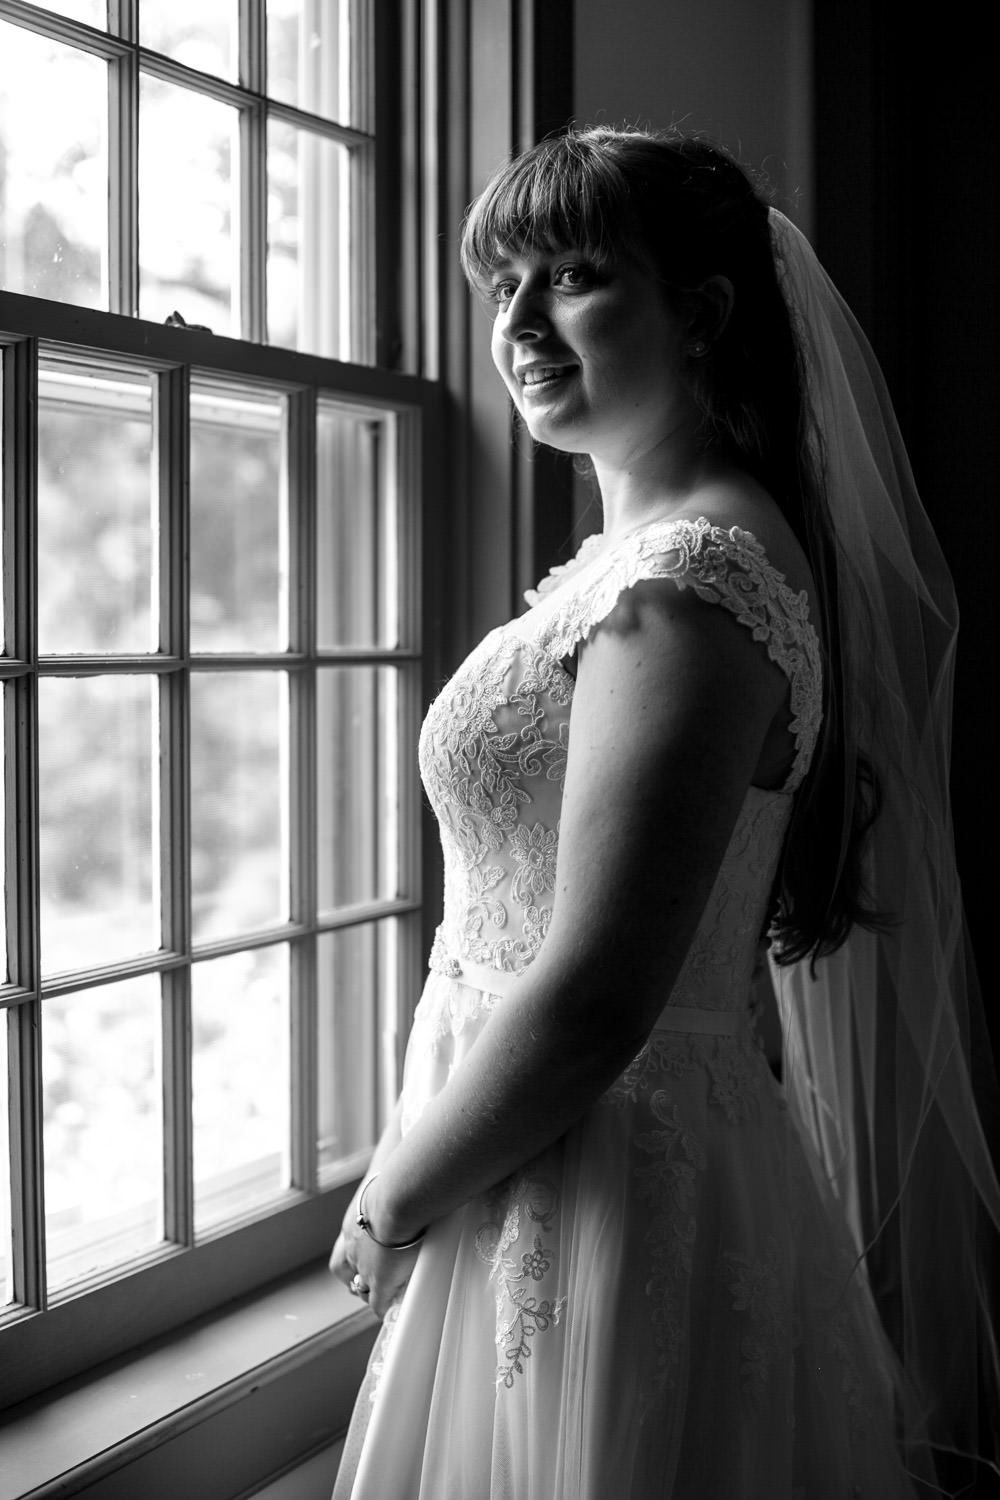 hartmans herb farm weddings, artistic BW photo of a bride by the window